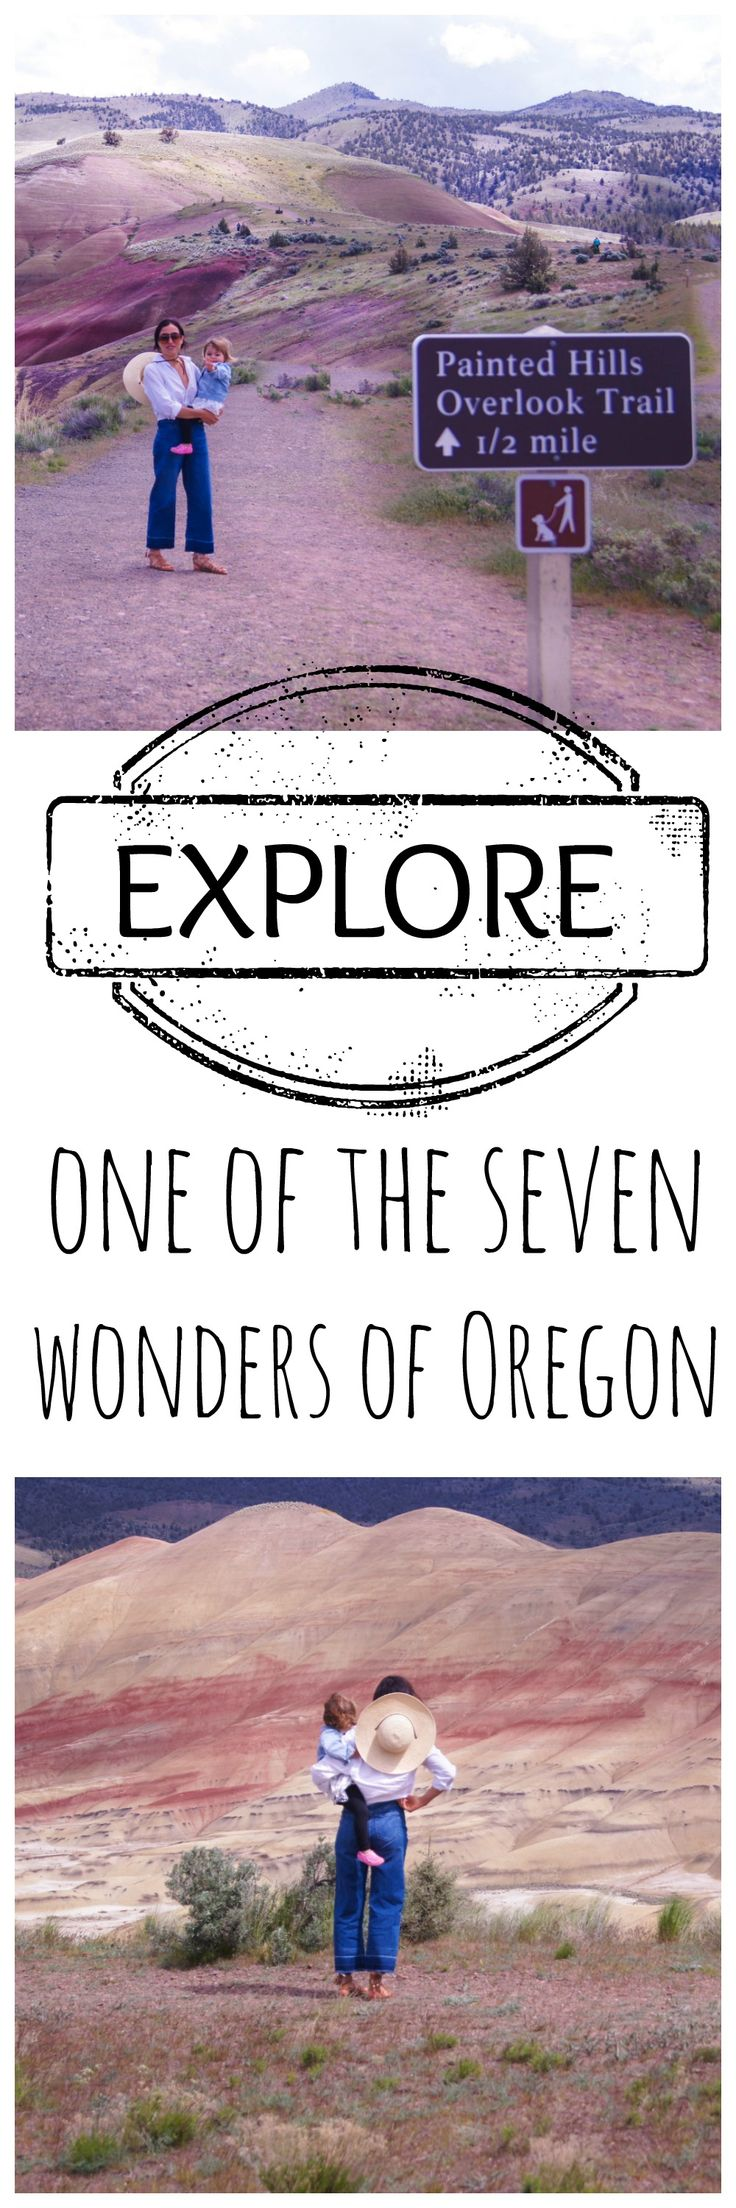 Explore one of the 7 wonders of Oregon, the painted hills. It is a quick day trip from Bend, Oregon and don't forget to take you camera because it is one of the most picturesque places. The hikes are kid friendly too.